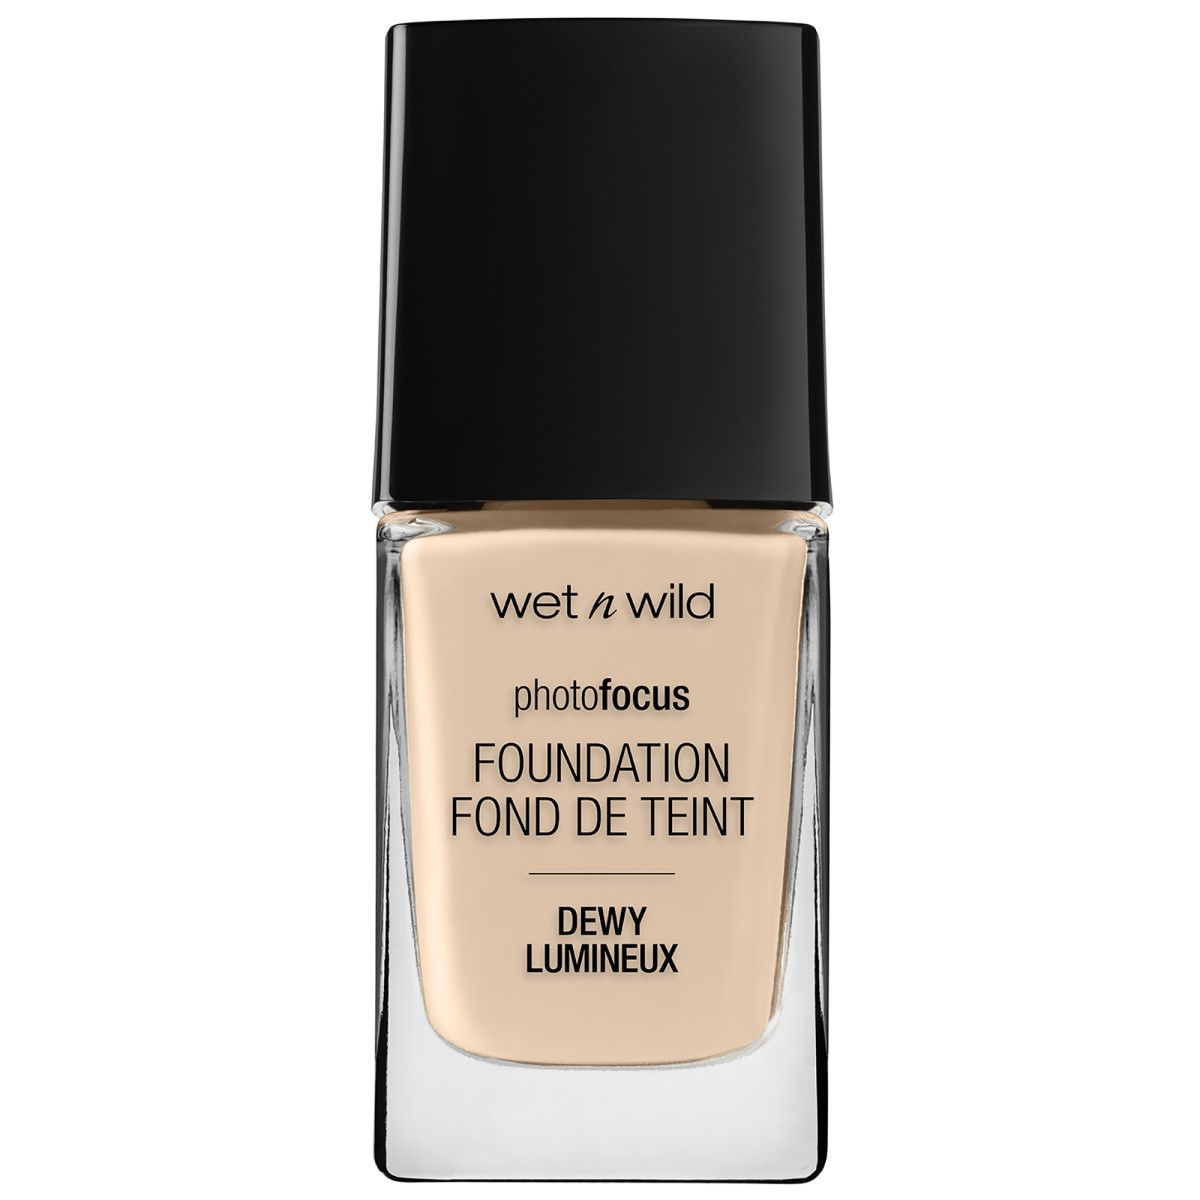 Wet n Wild Photofocus Foundation in Soft Ivory. Follow my